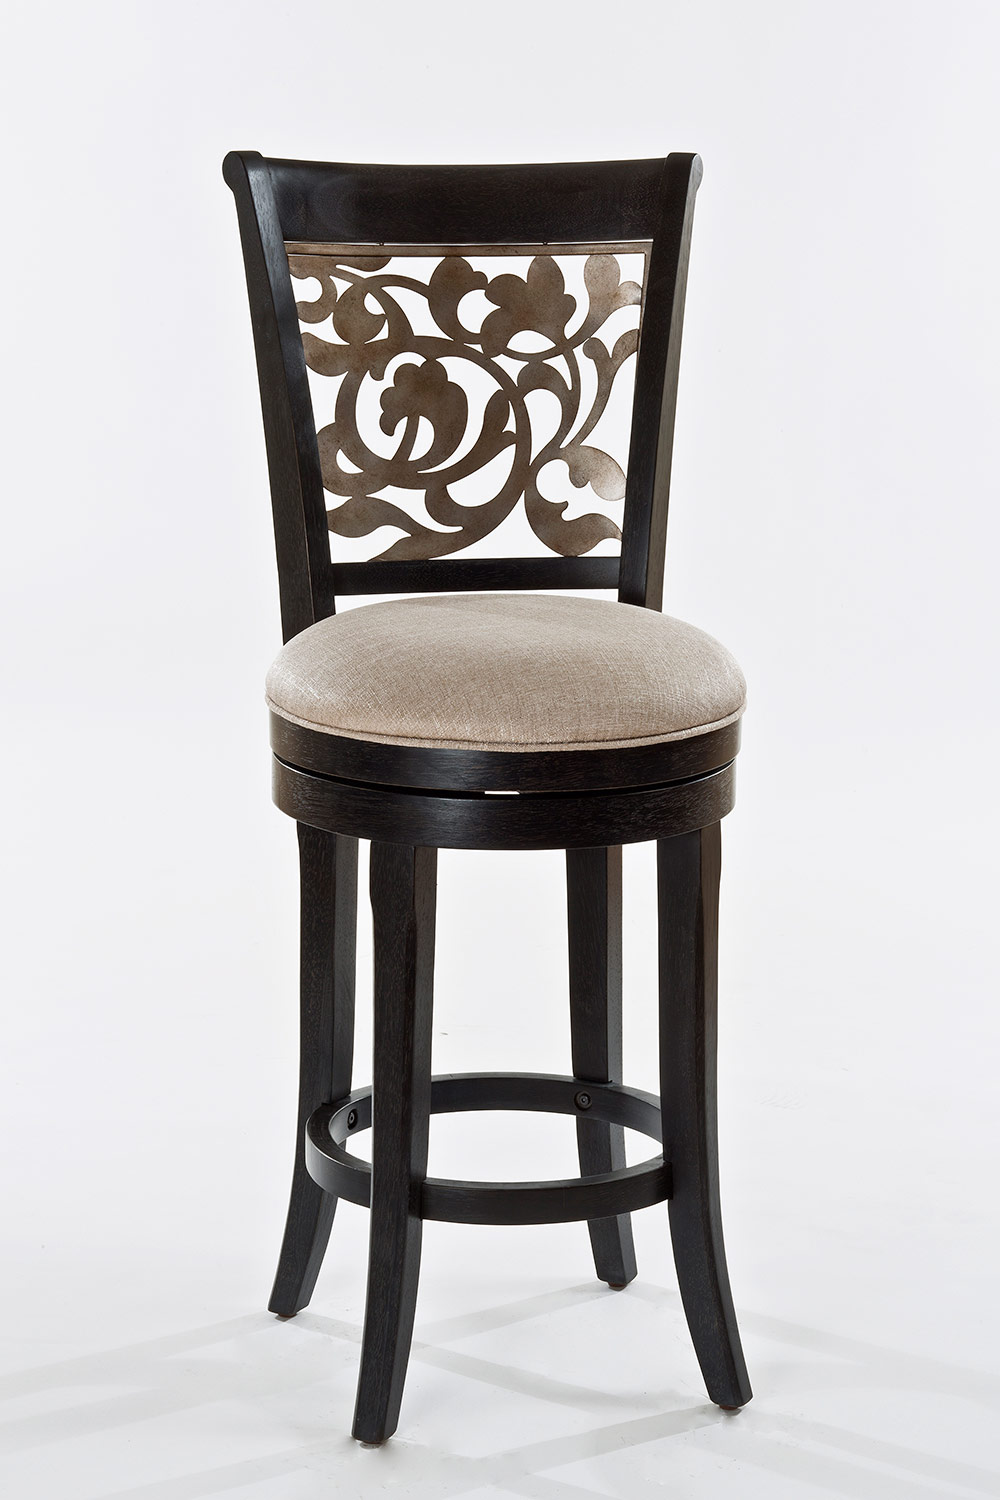 Hillsdale Bennington Swivel Bar Stool Black Distressed